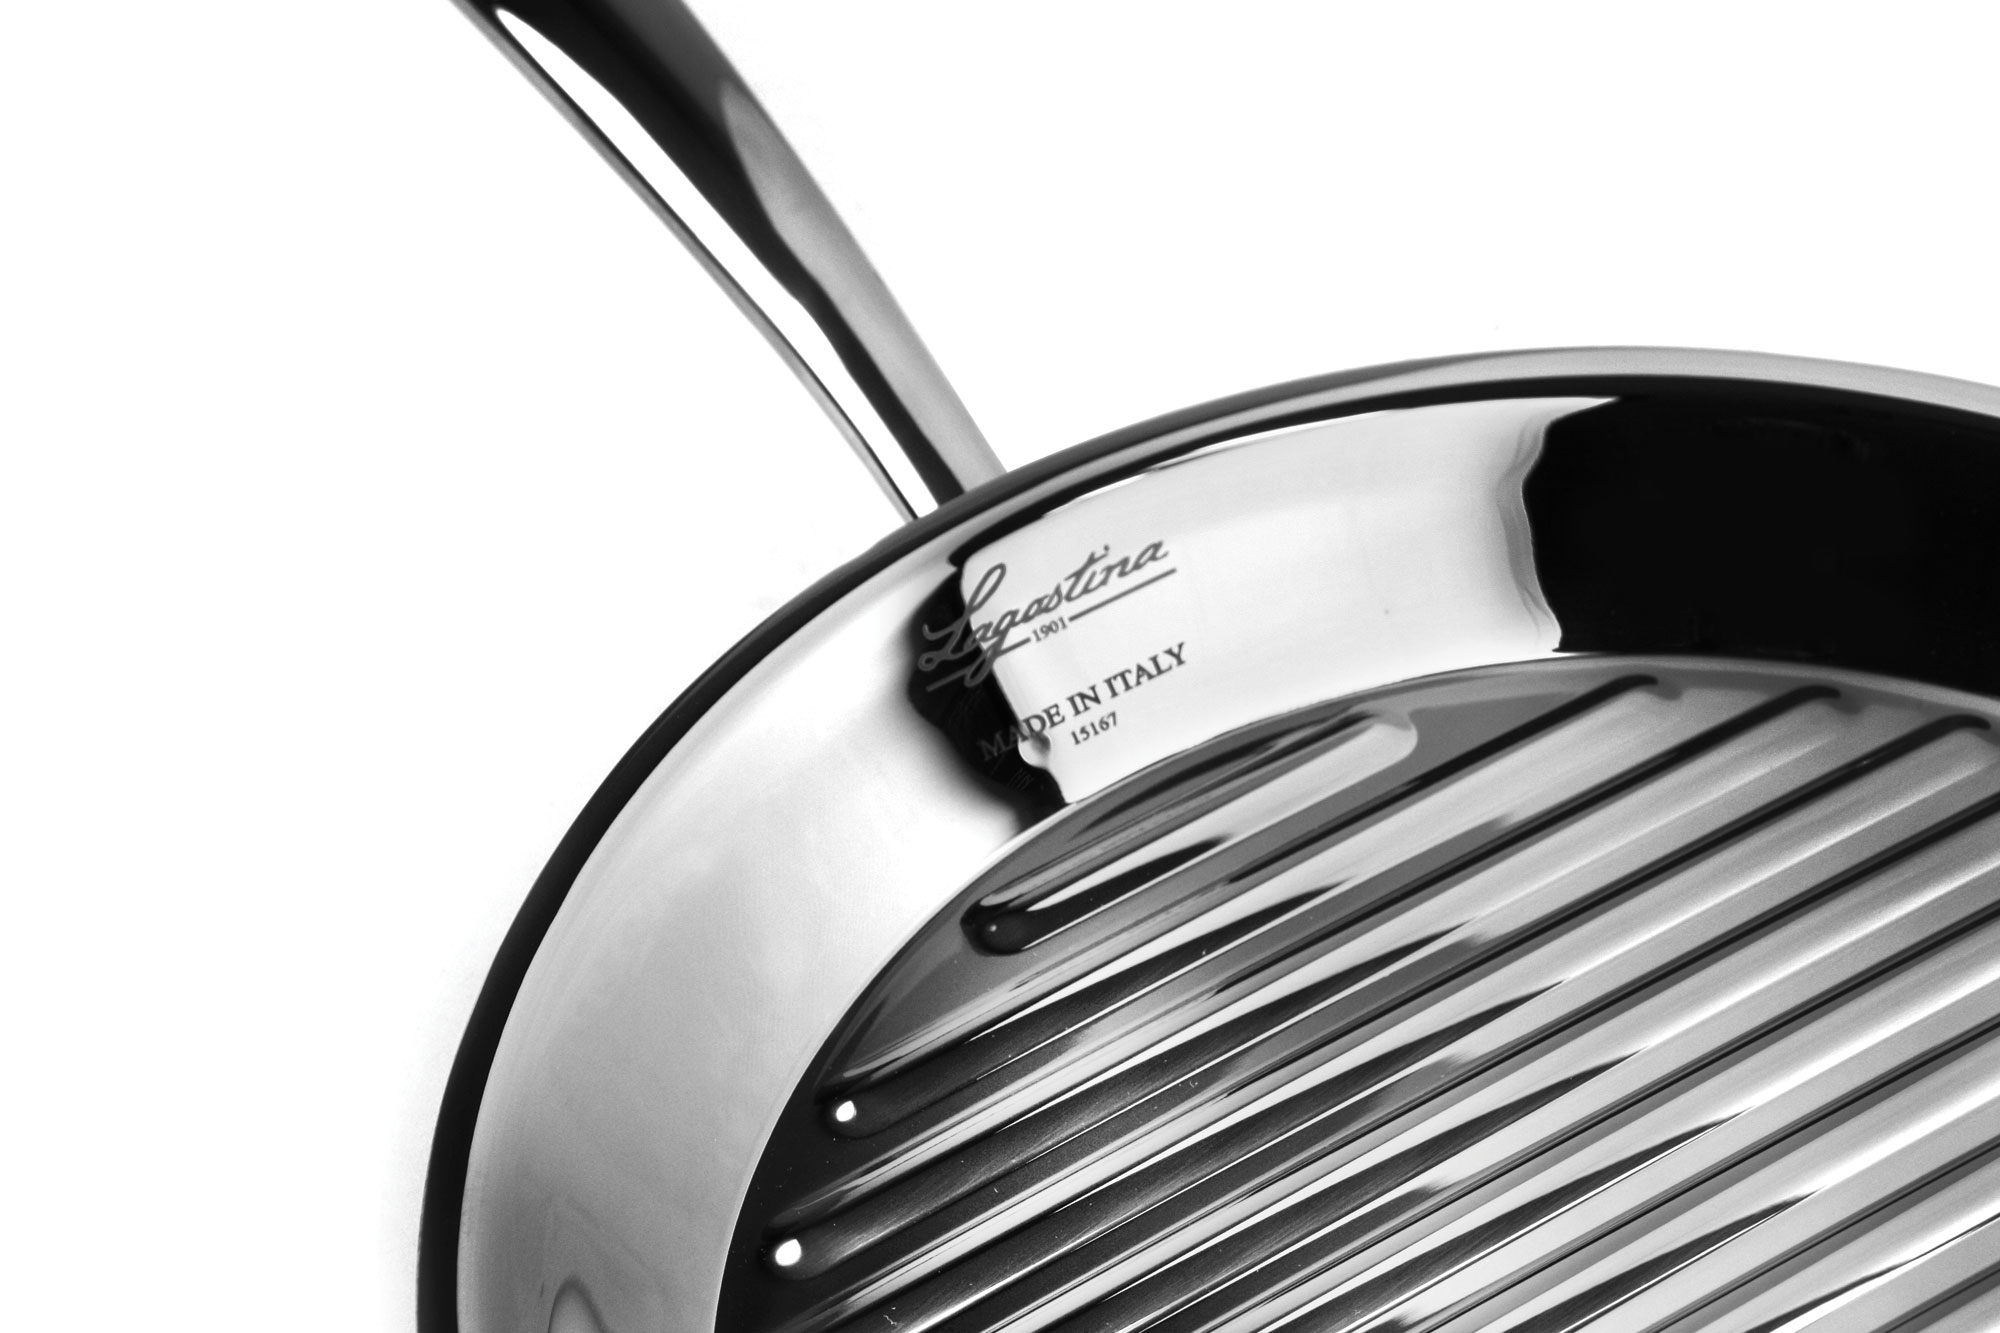 Lagostina Round Stainless Steel Grill Pan 11 Inch